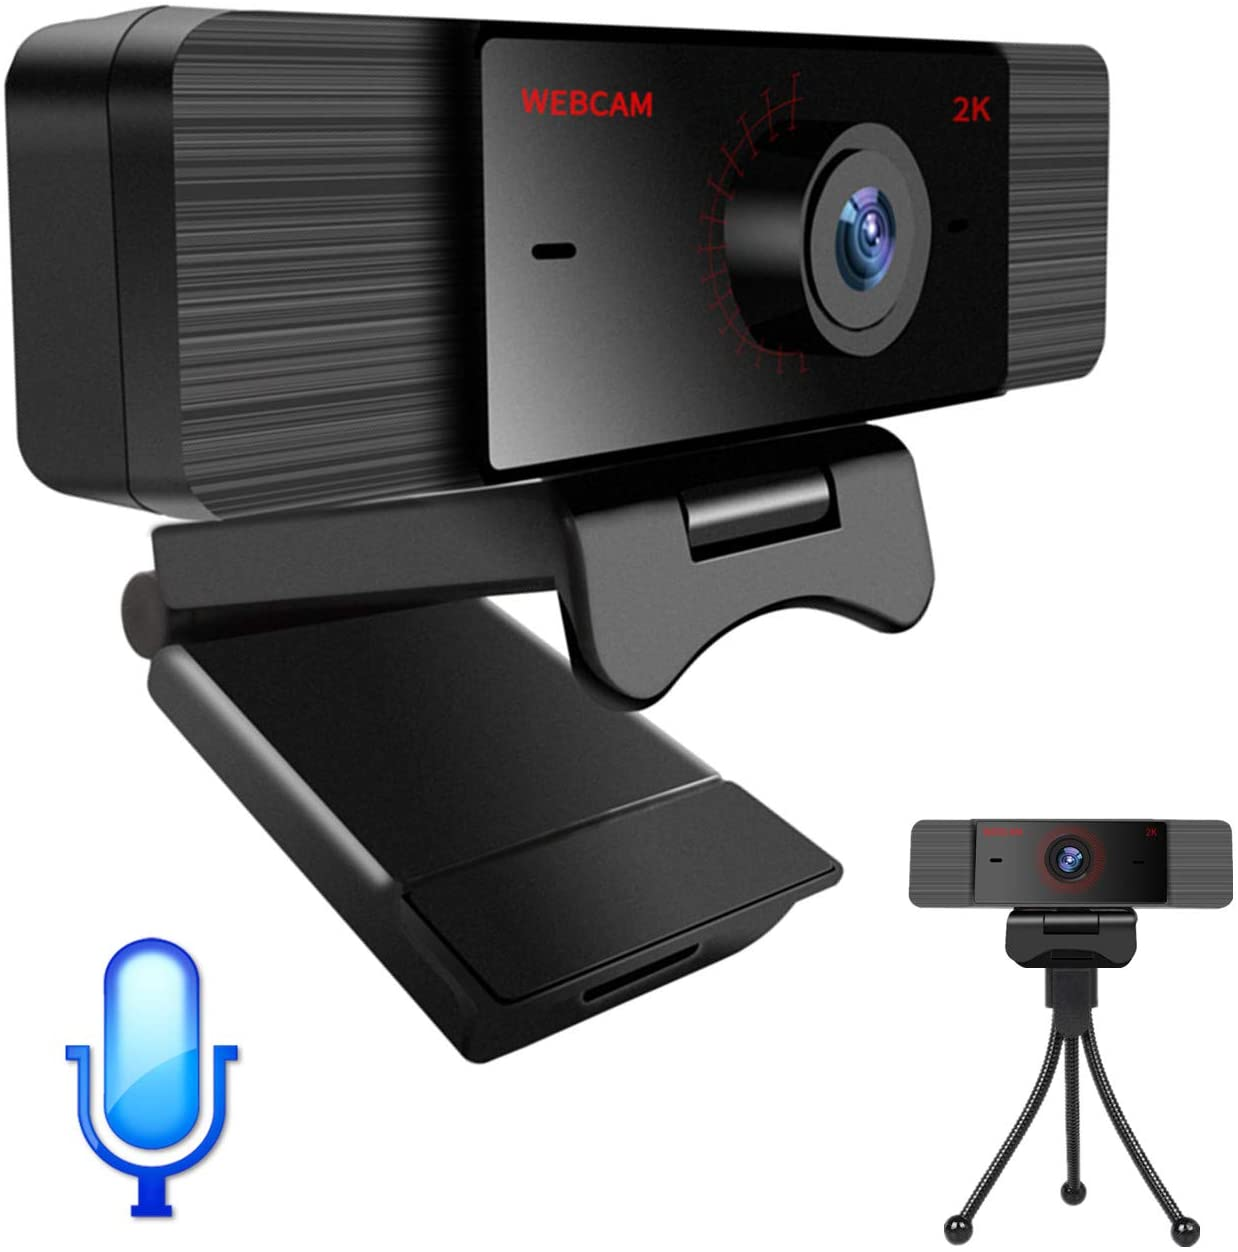 Webcam with Microphone for Computer Laptop with Privacy Cover and Tripod, 1080P Computer Streaming Web Camera with Built-in Mic, Rotatable USB PC Webcam for Video Conference, Webcast, Podcast, Gaming